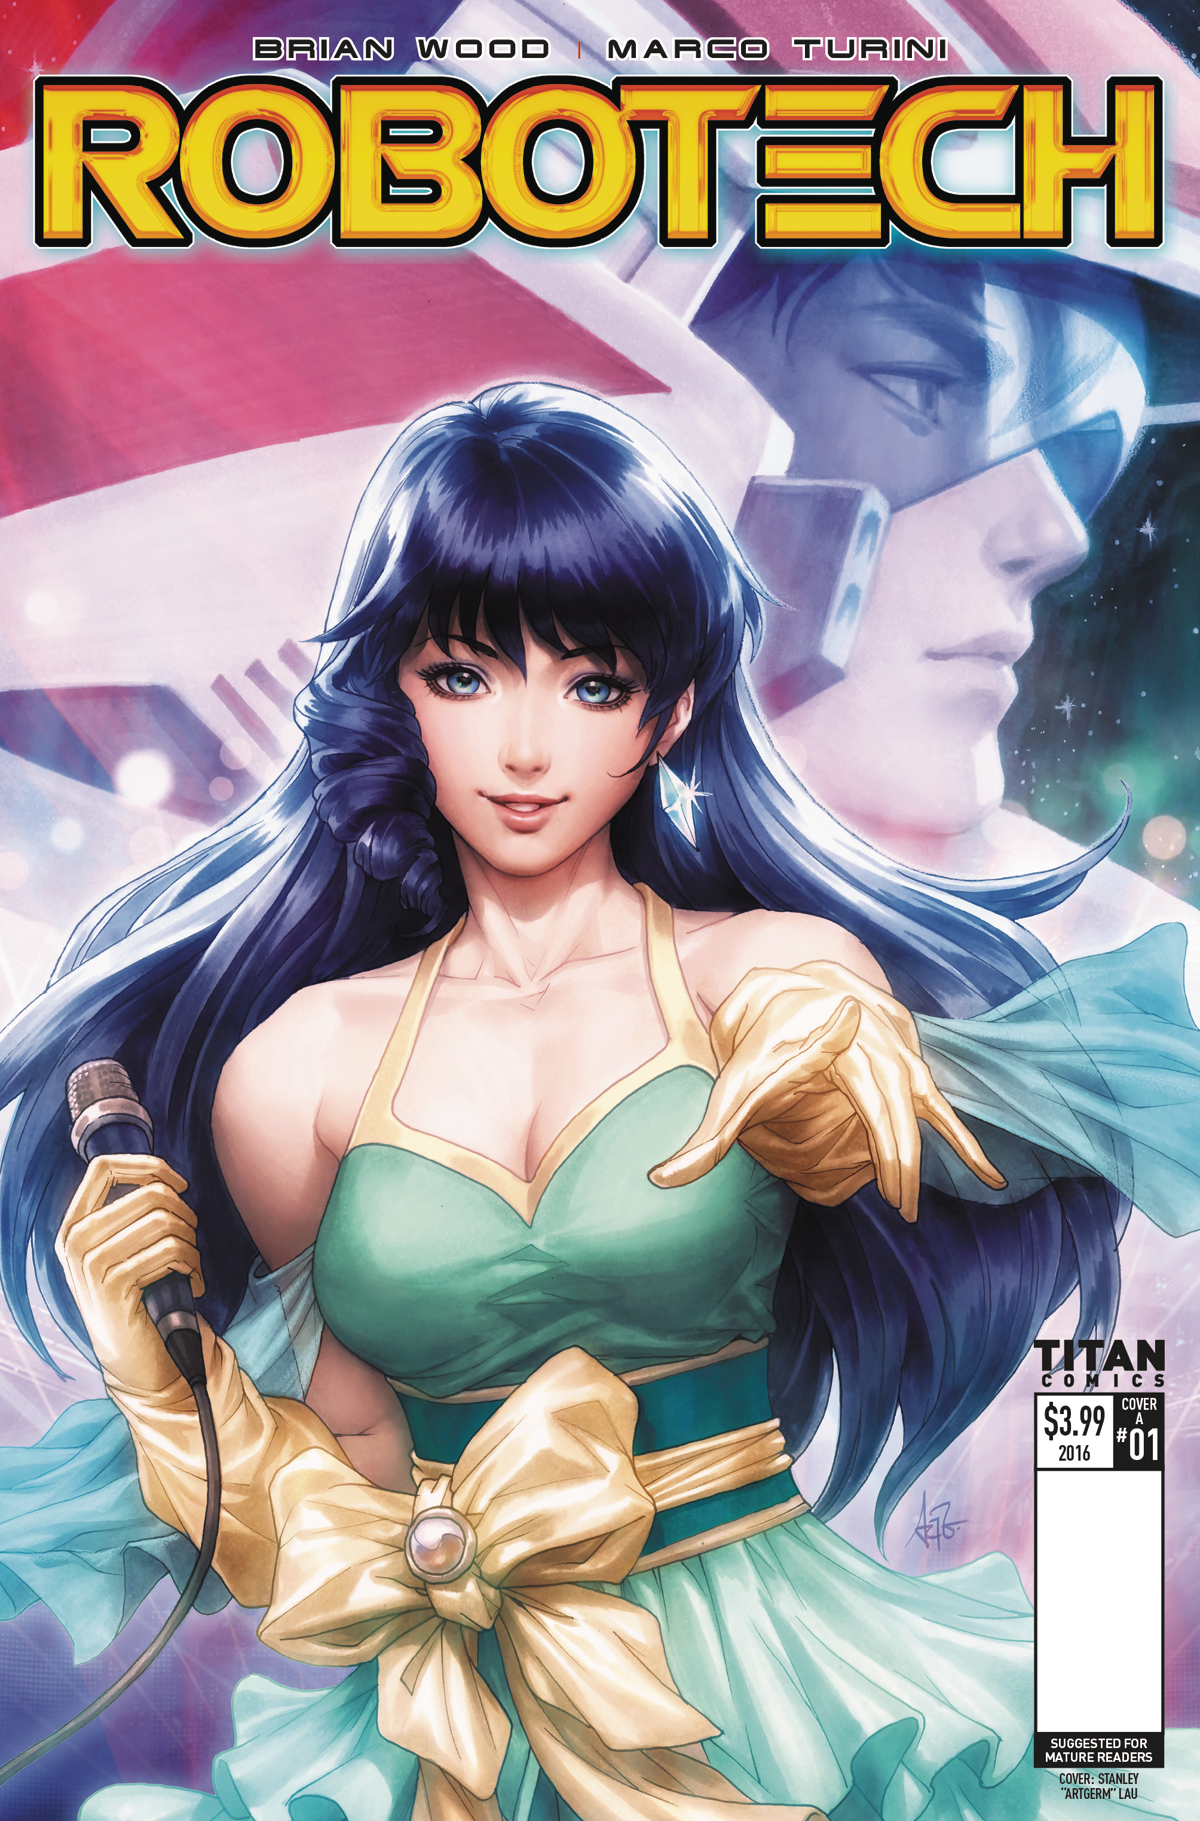 (USE MAY179024) ROBOTECH #1 CVR A LAU